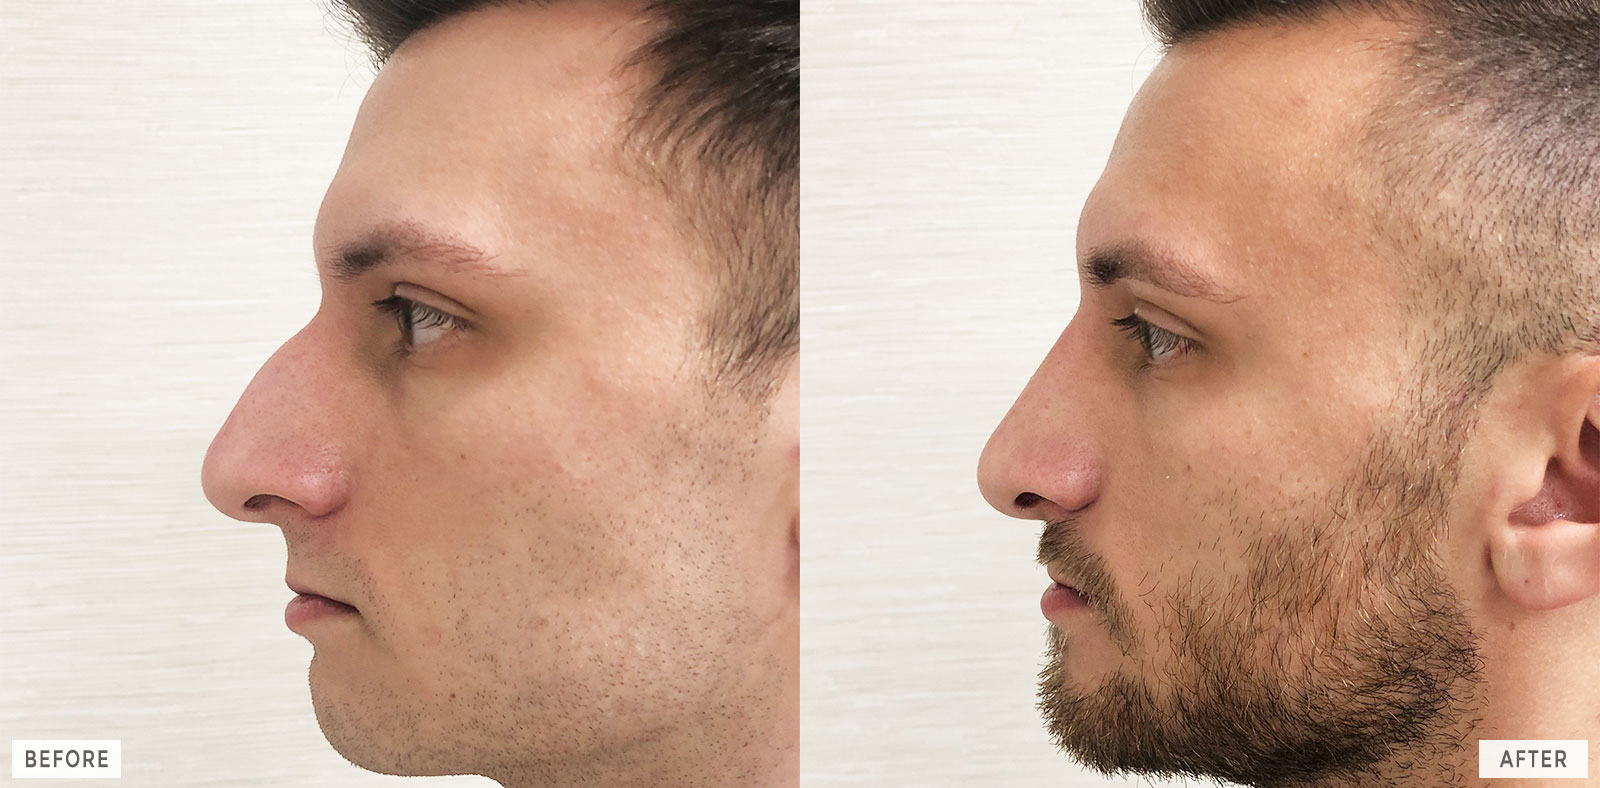 Philadelphia Cosmetic Rhinoplasty Before and After Photos